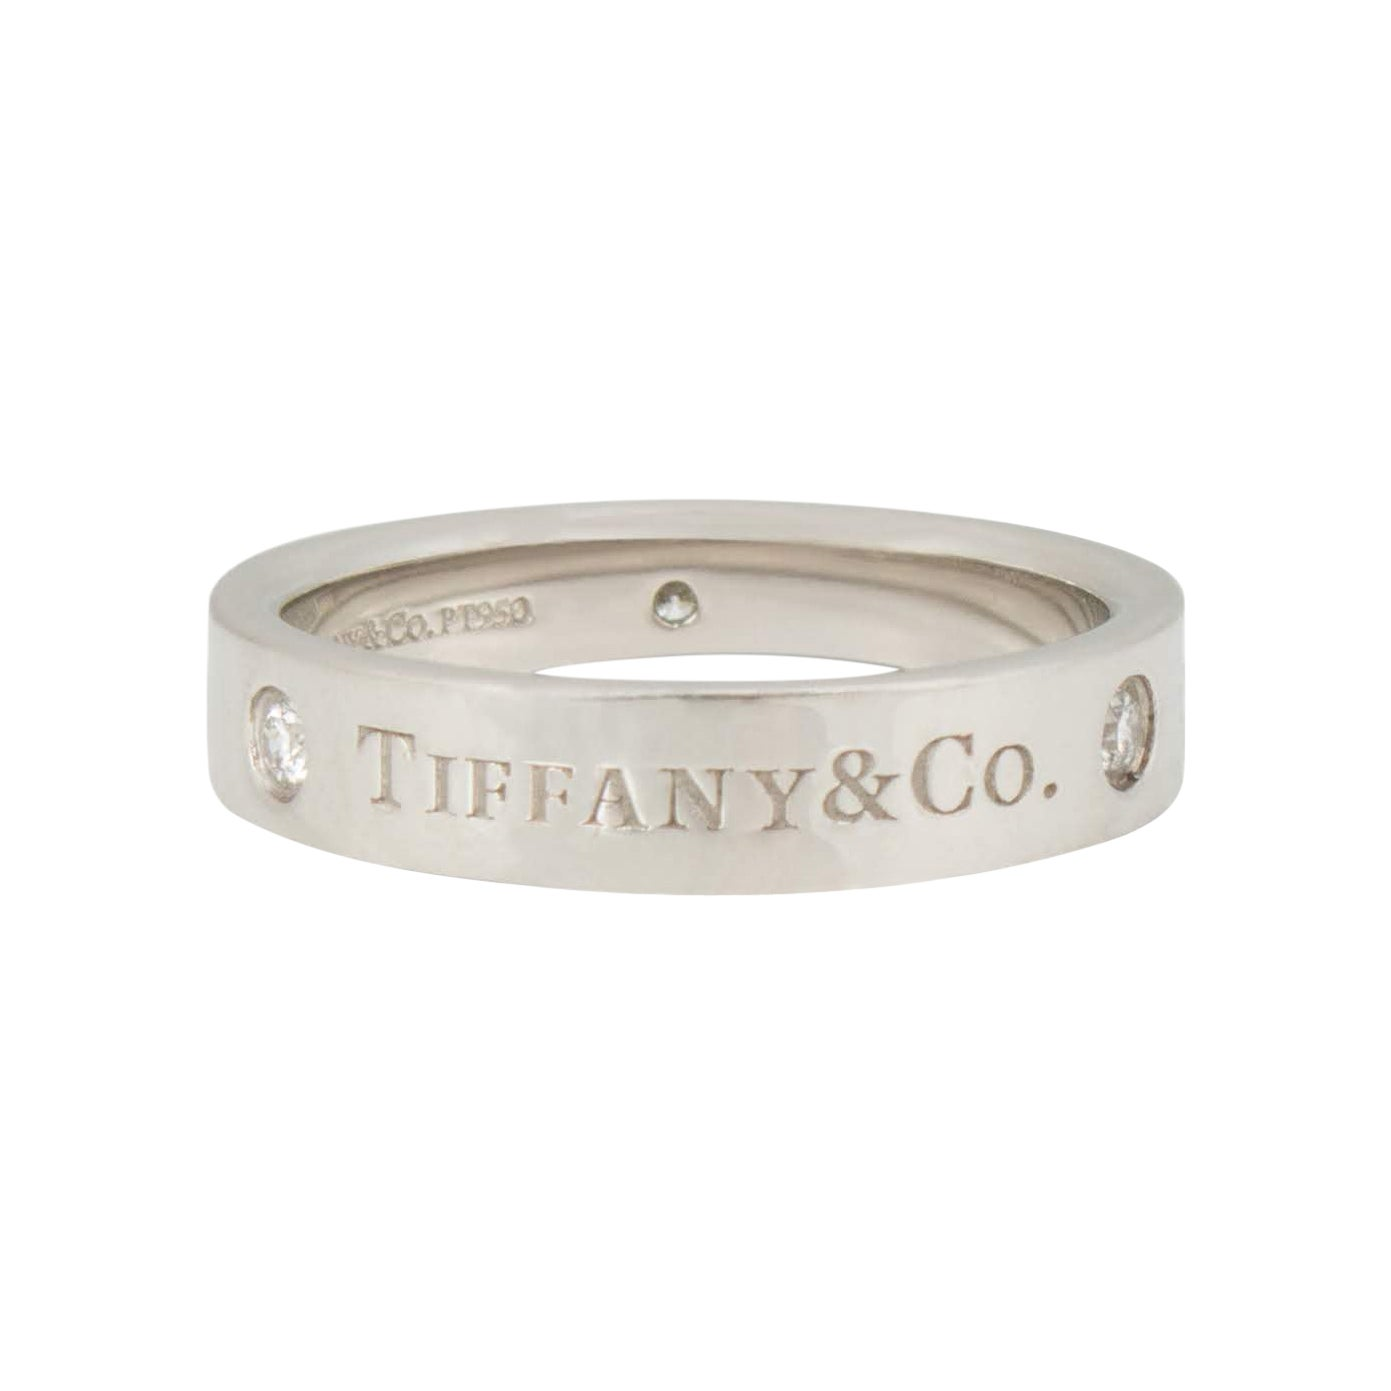 Tiffany & Co. Platinum Diamond Ring